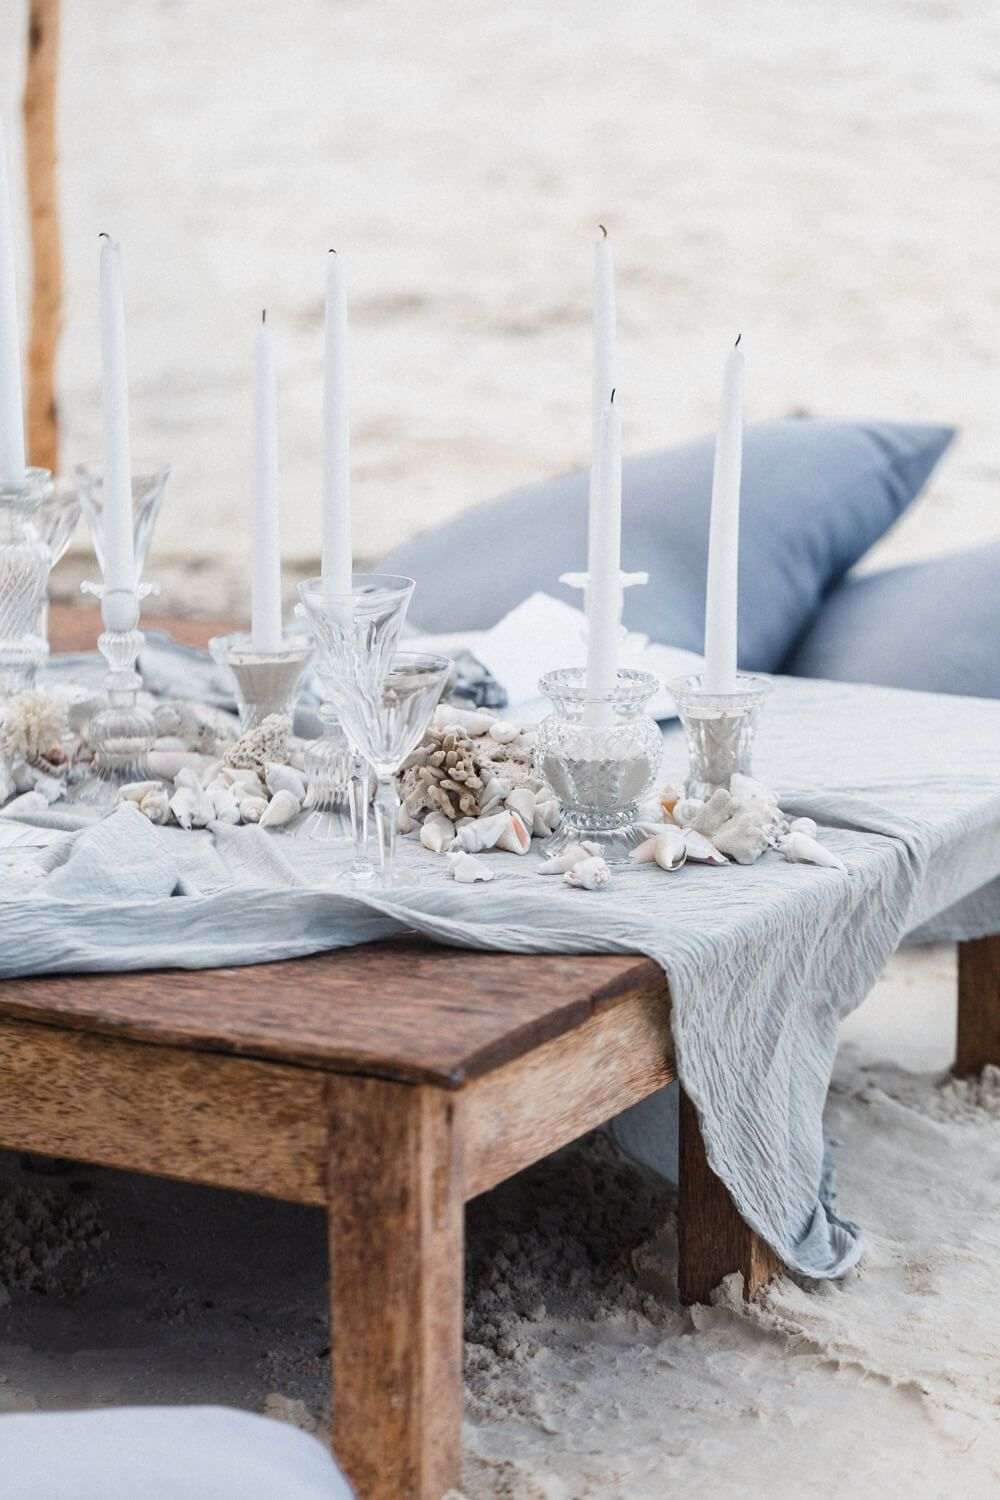 Hochzeitsinspiration, Wedding Inspiration // Serendipity // Zanzibar // Destination Wedding // Strandhochzeit // Canopy Zelt, Strand Picknick, Tischdekoration, Sand Kerzen Muscheln